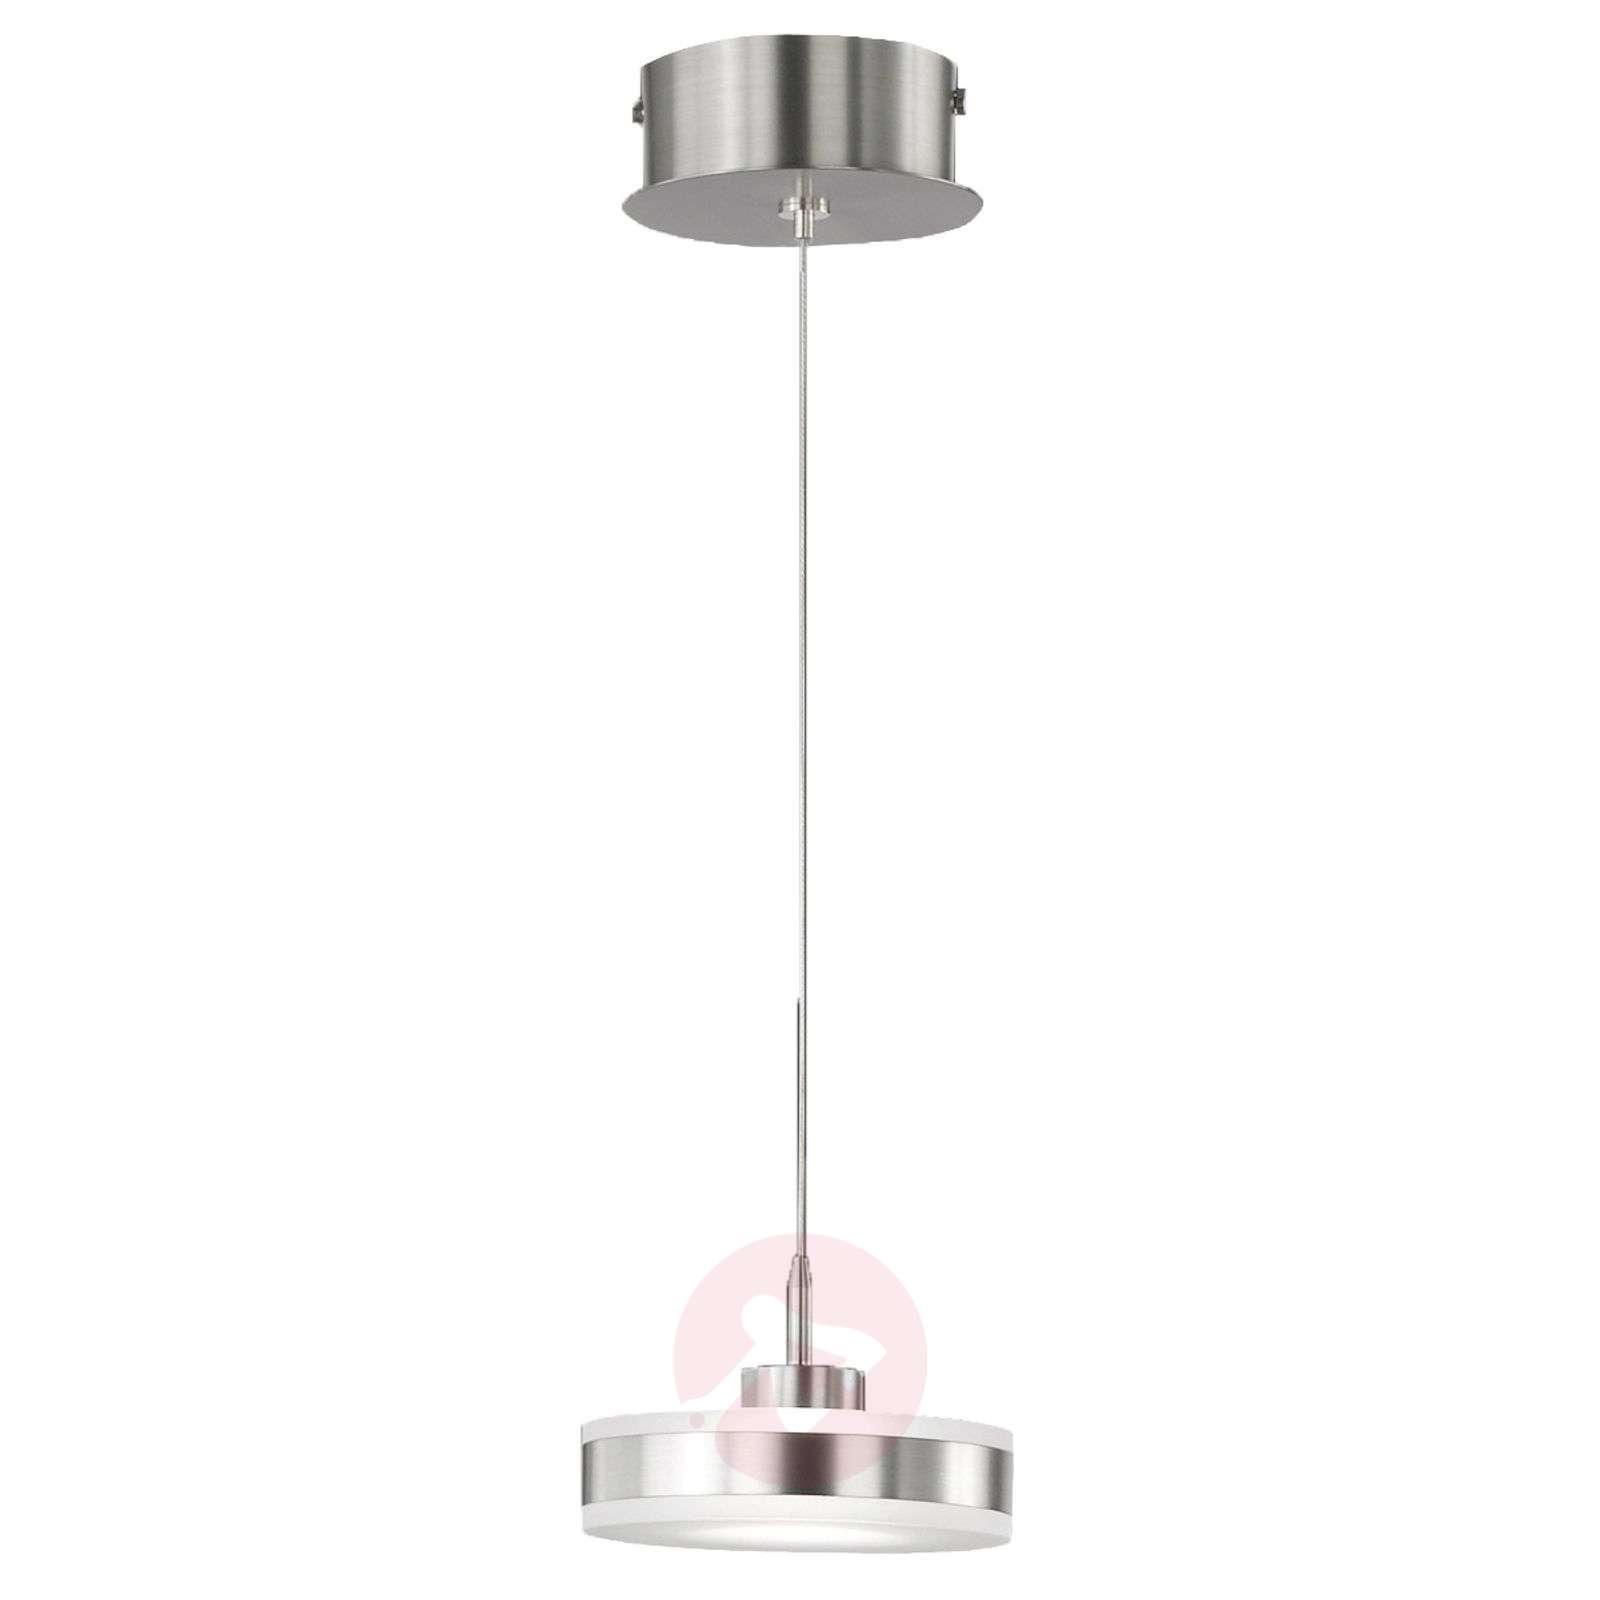 Puk round LED pendant light-4581206-01